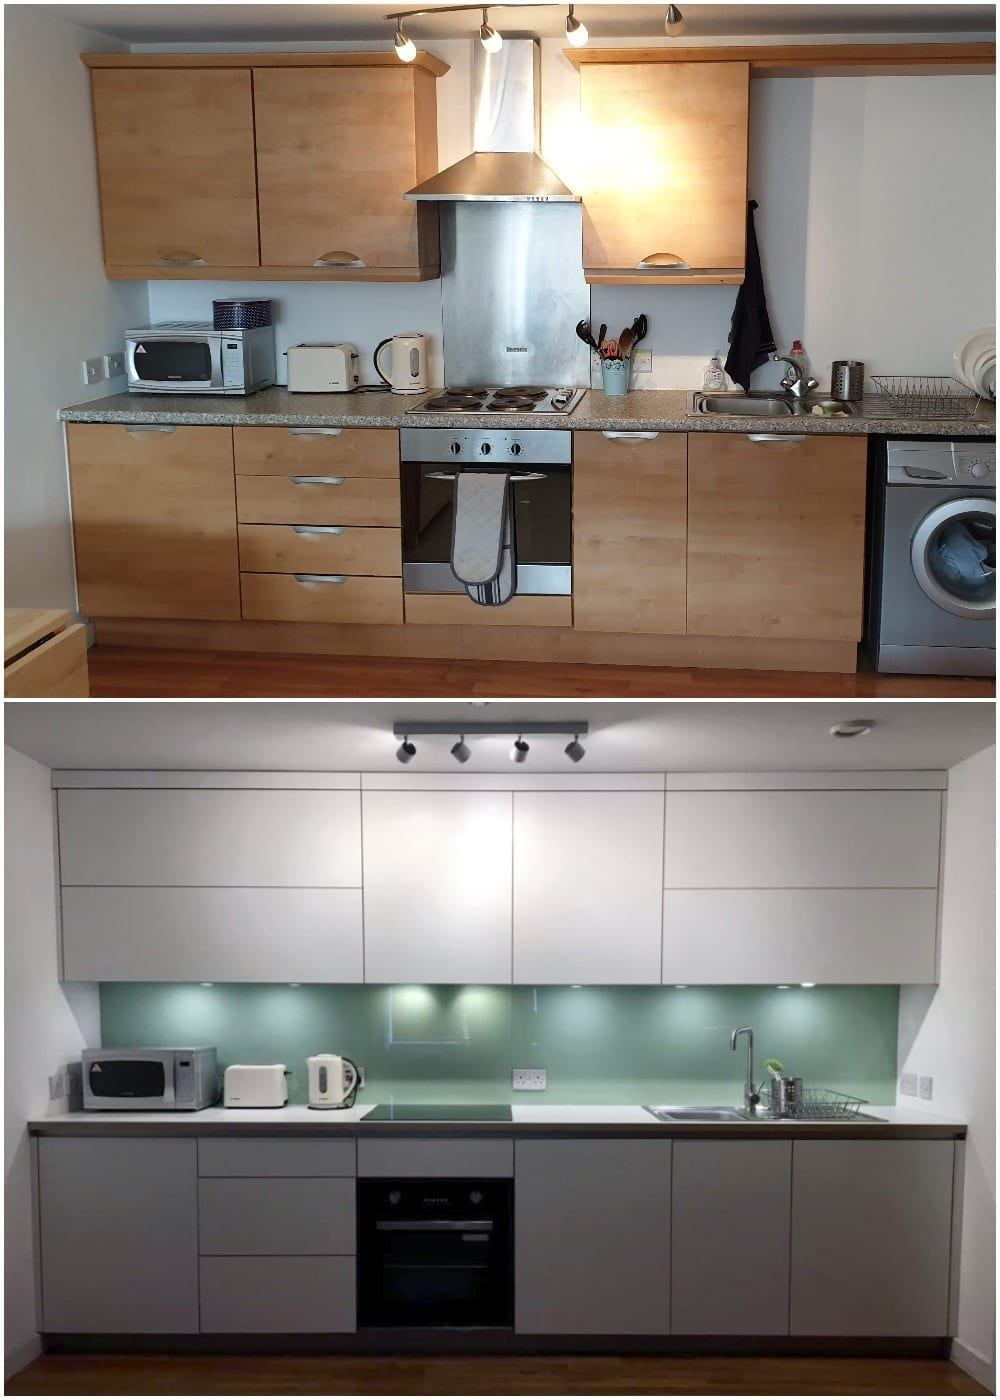 Before and after kitchen furniture